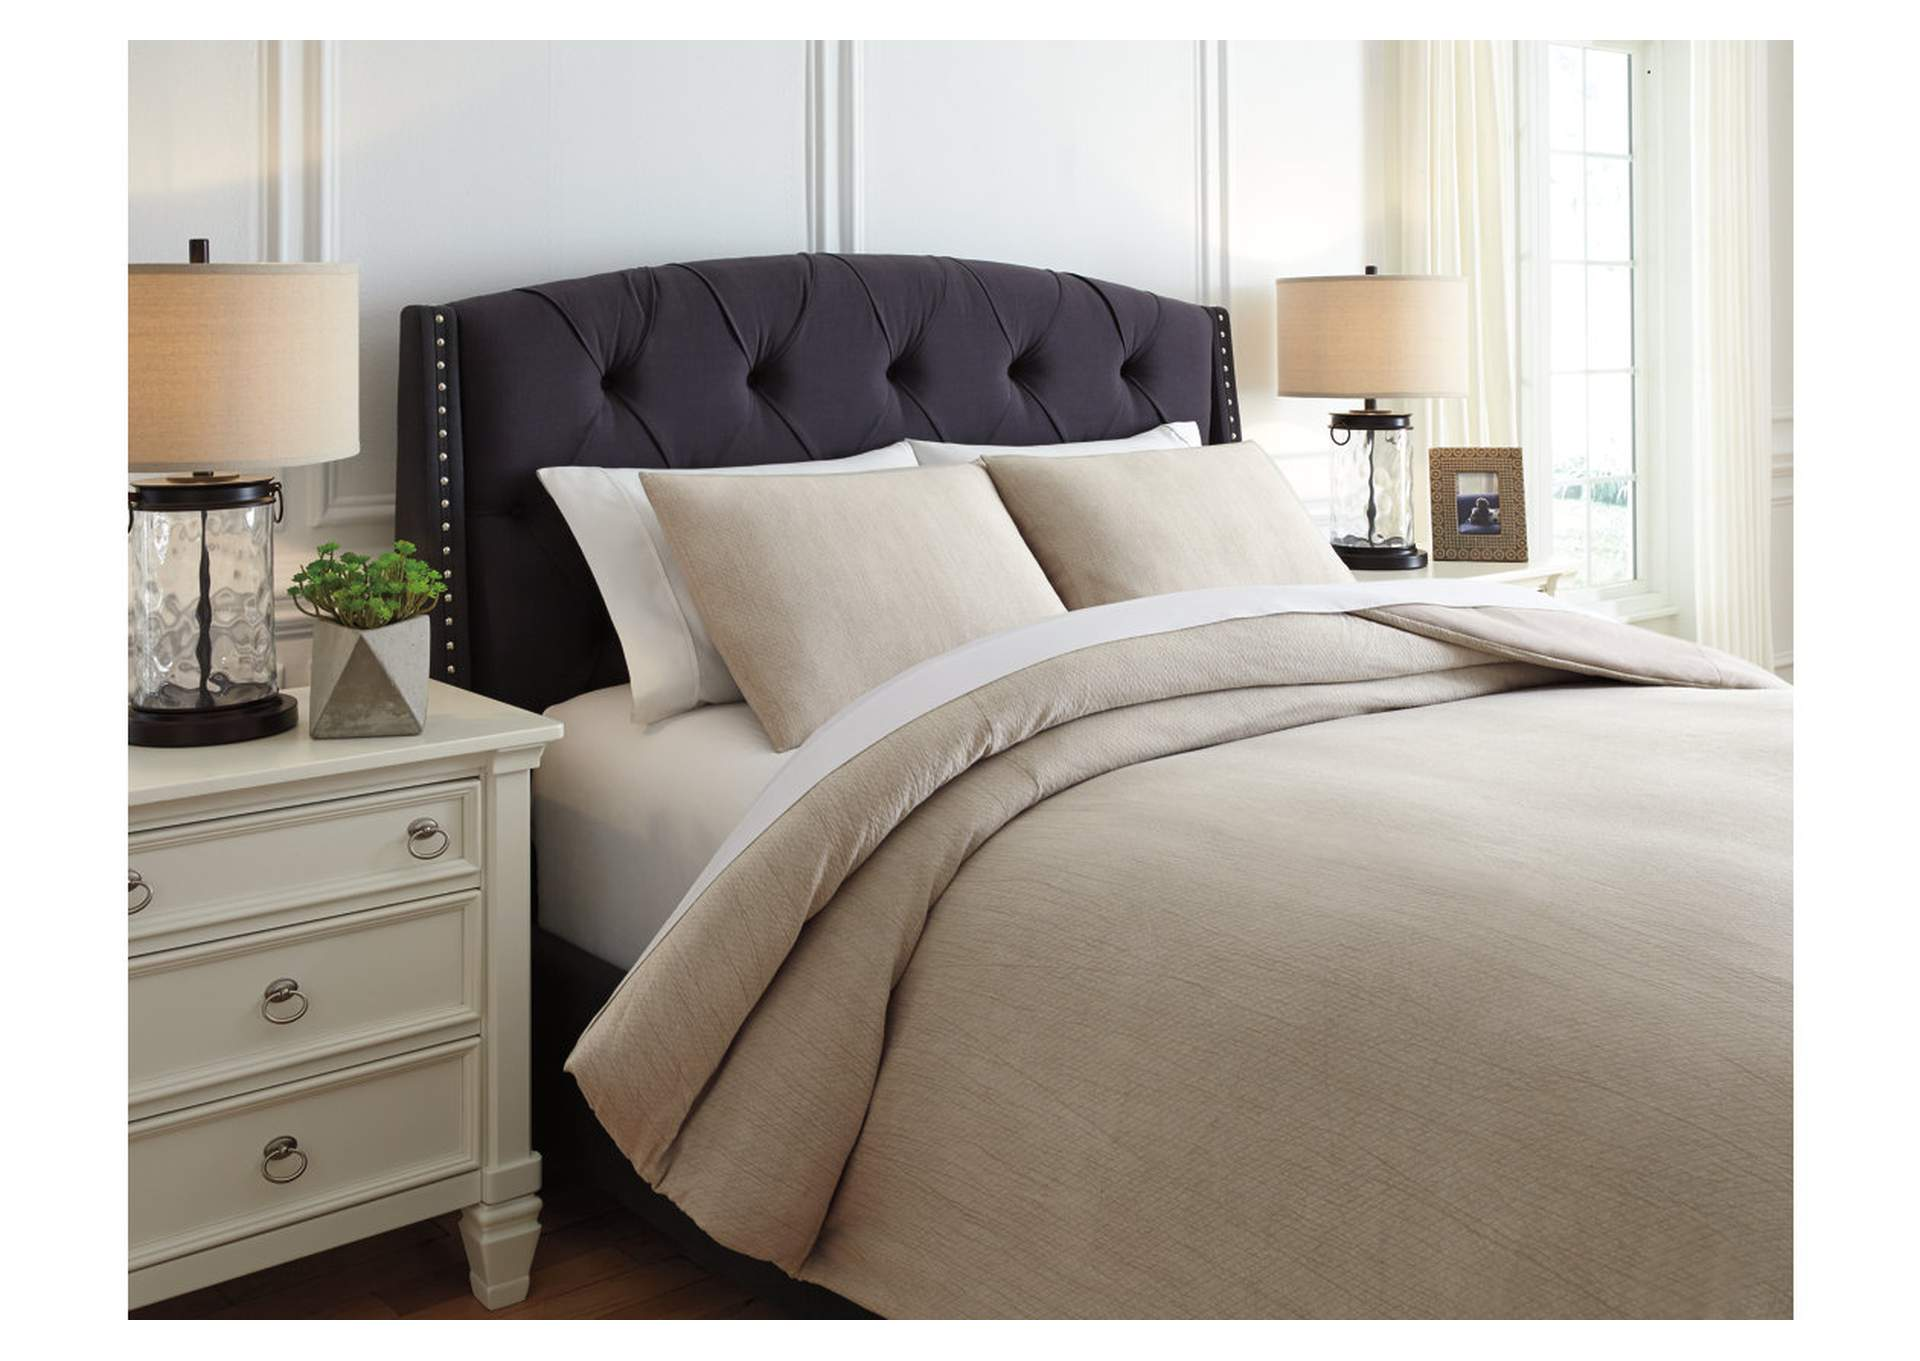 Mayda Beige Queen Comforter Set,Signature Design By Ashley